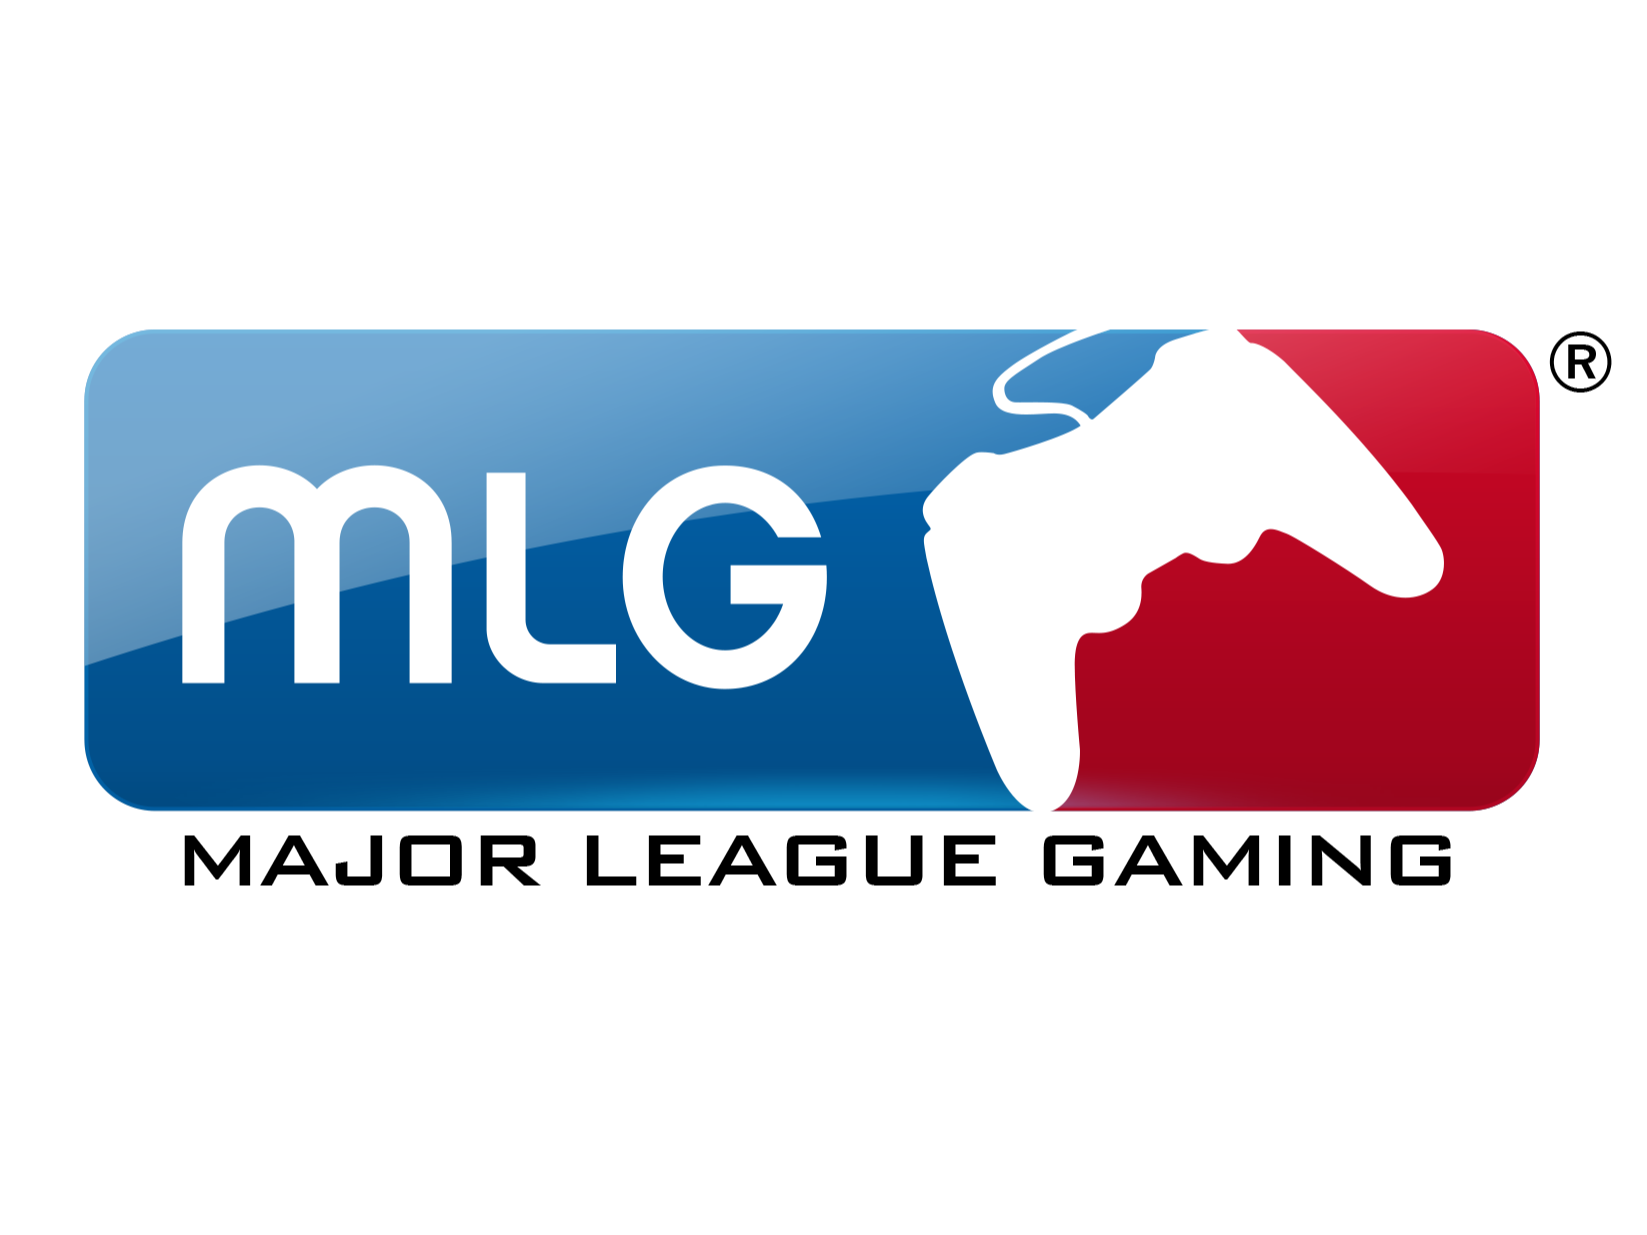 Major League Gaming Acquired By Activision